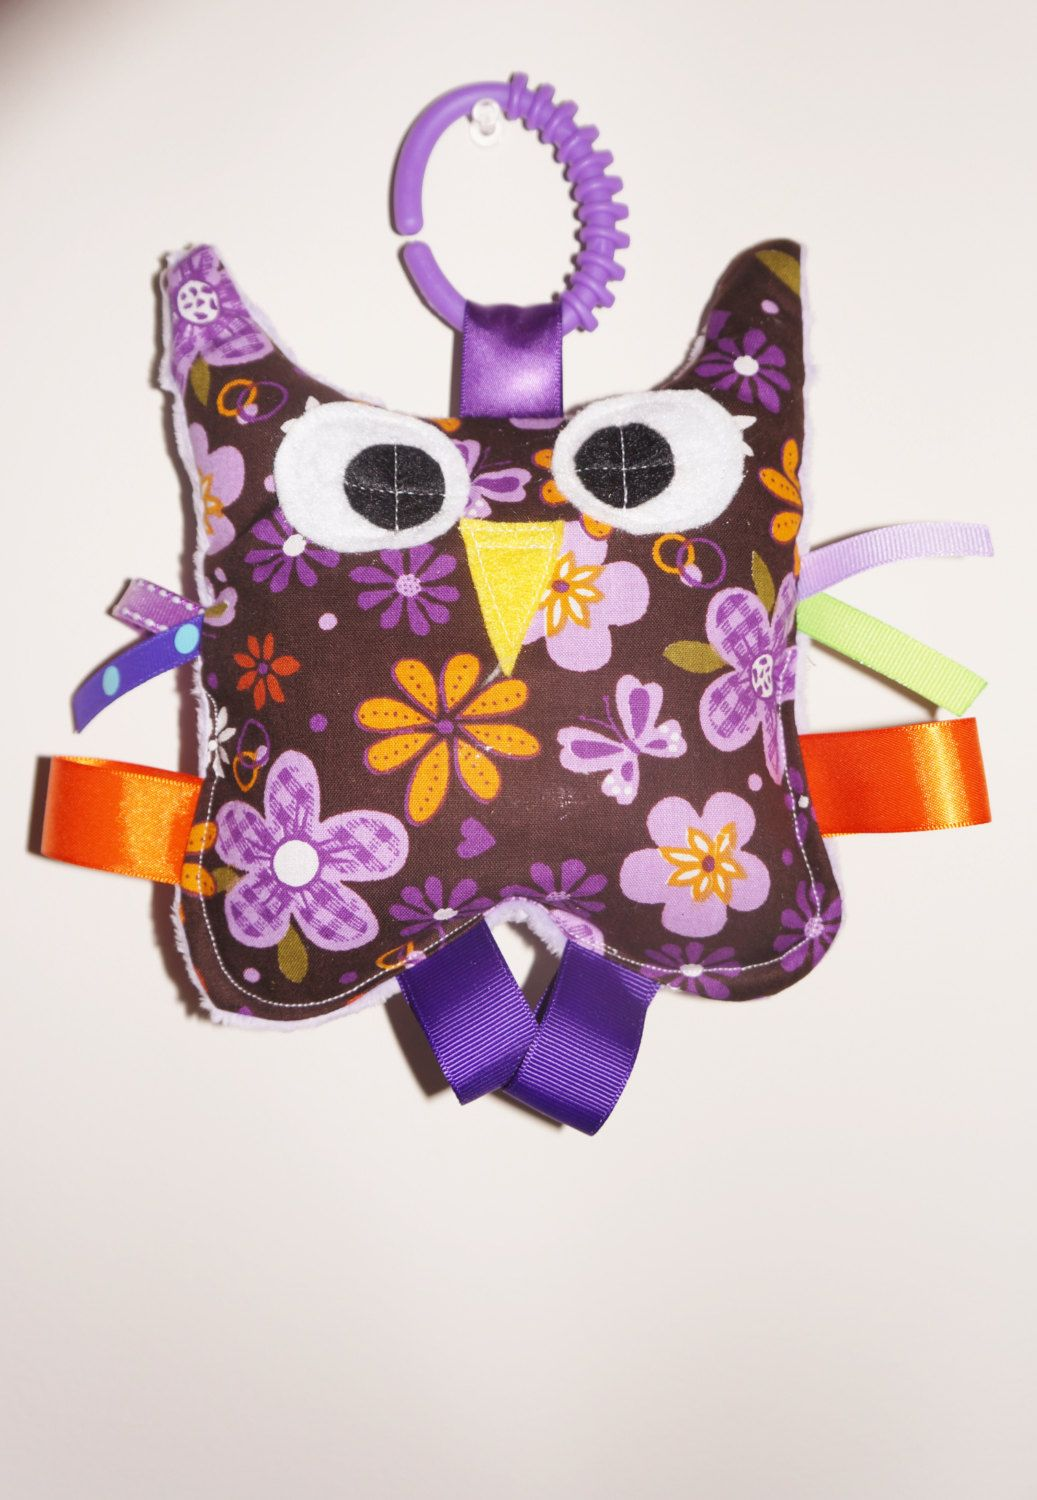 Hootie the Owl toycrinkle toy crackle toy by Sassydoodlebaby